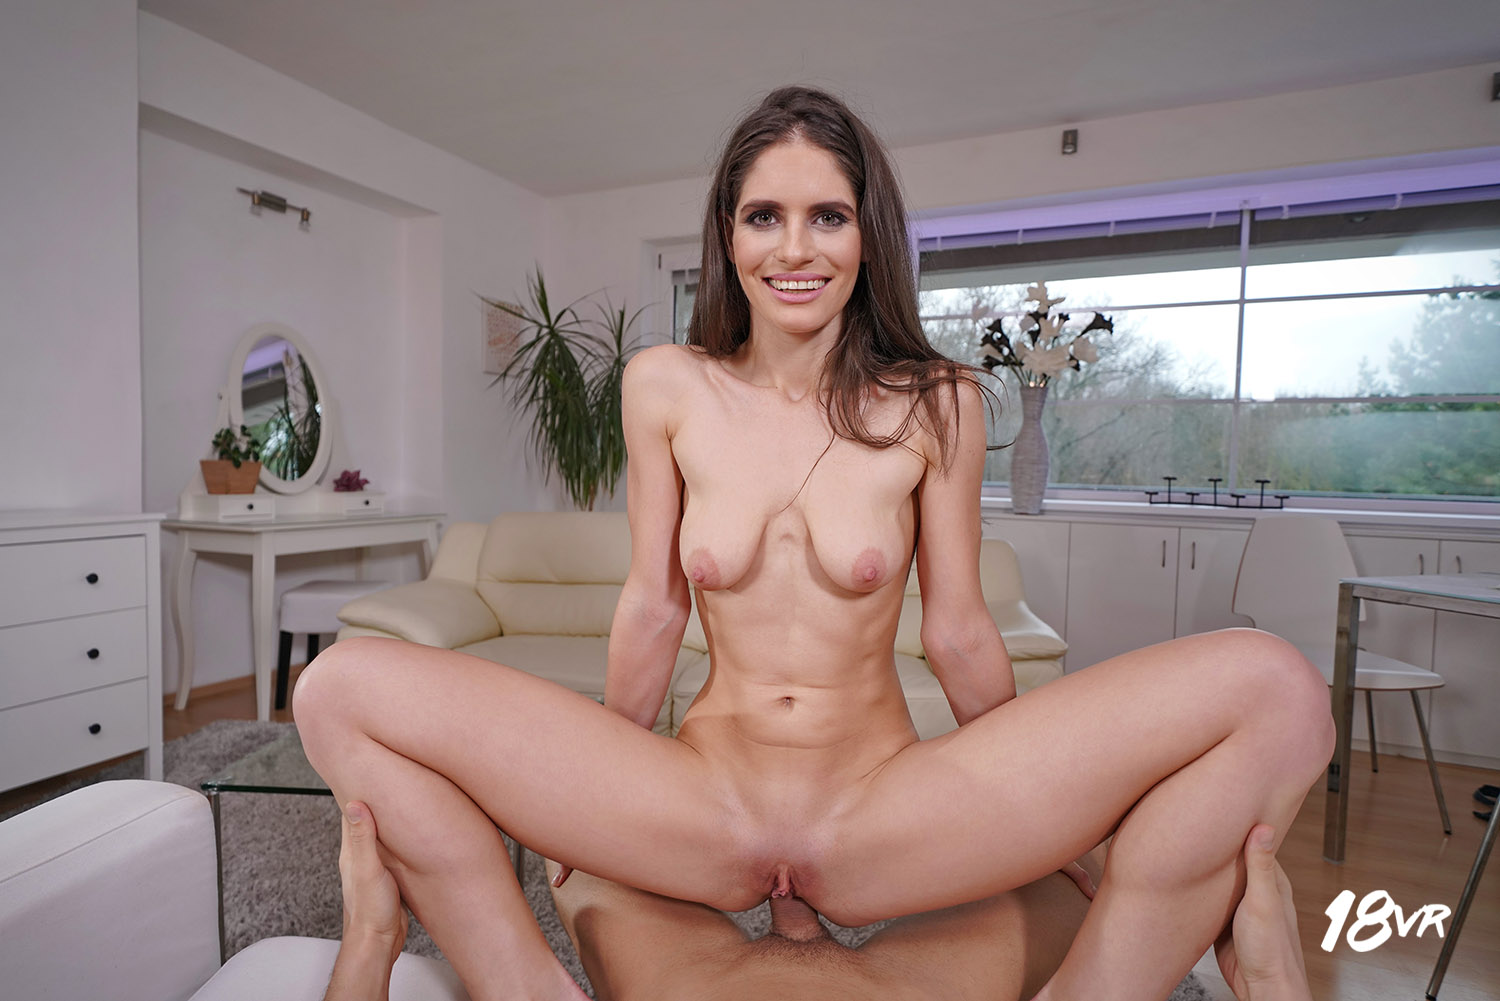 18vr anal fuck in the office with squirting latina veronica 6